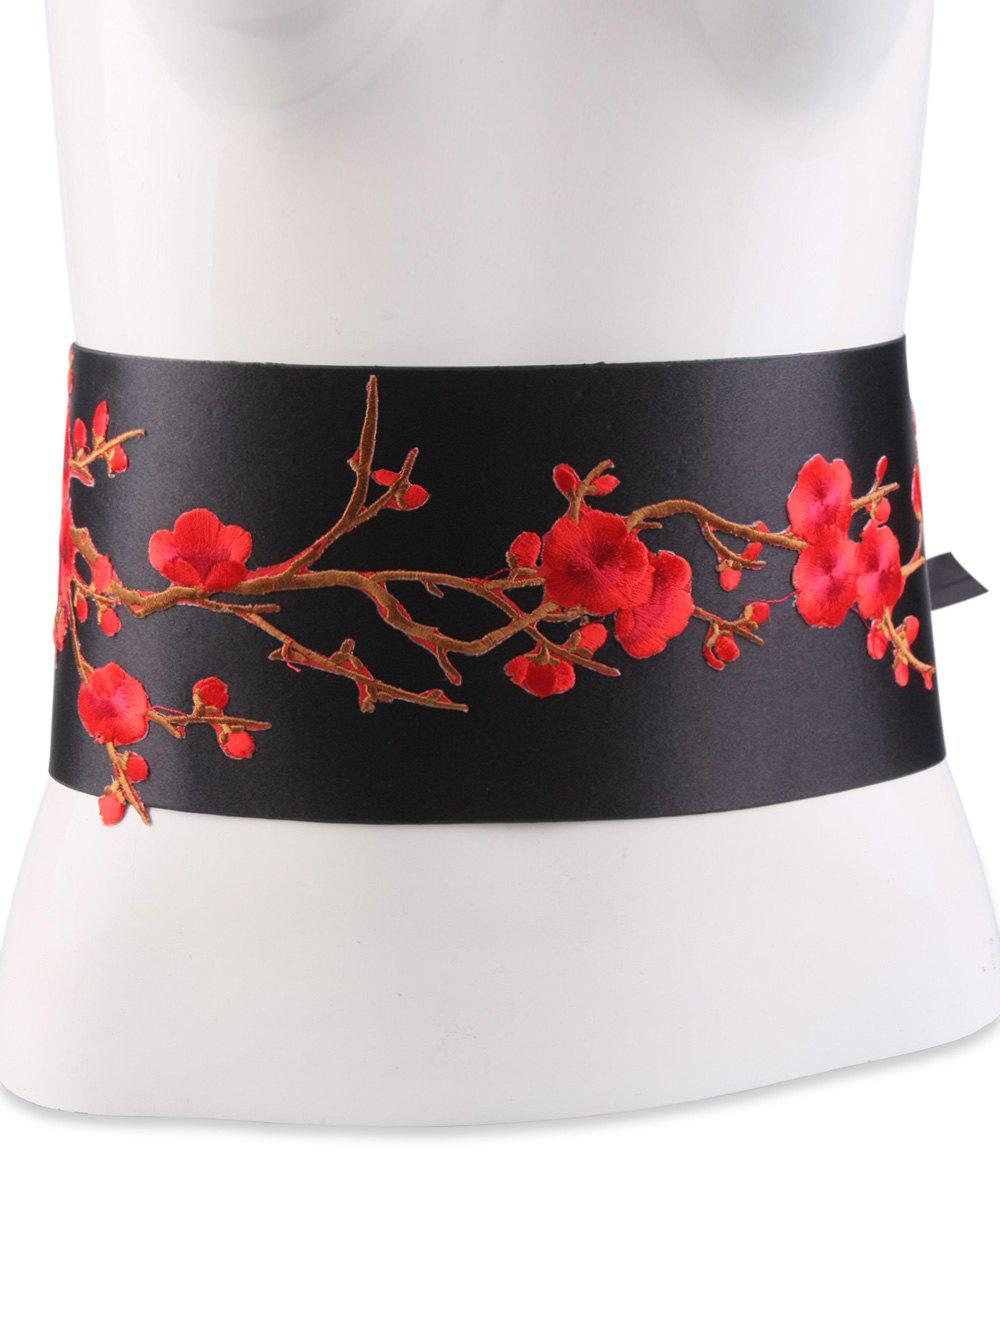 Chinoiserie Banded Flowers Branch Embroidery Corset Belt flowers branch embroidered chinoiserie fabric corset belt